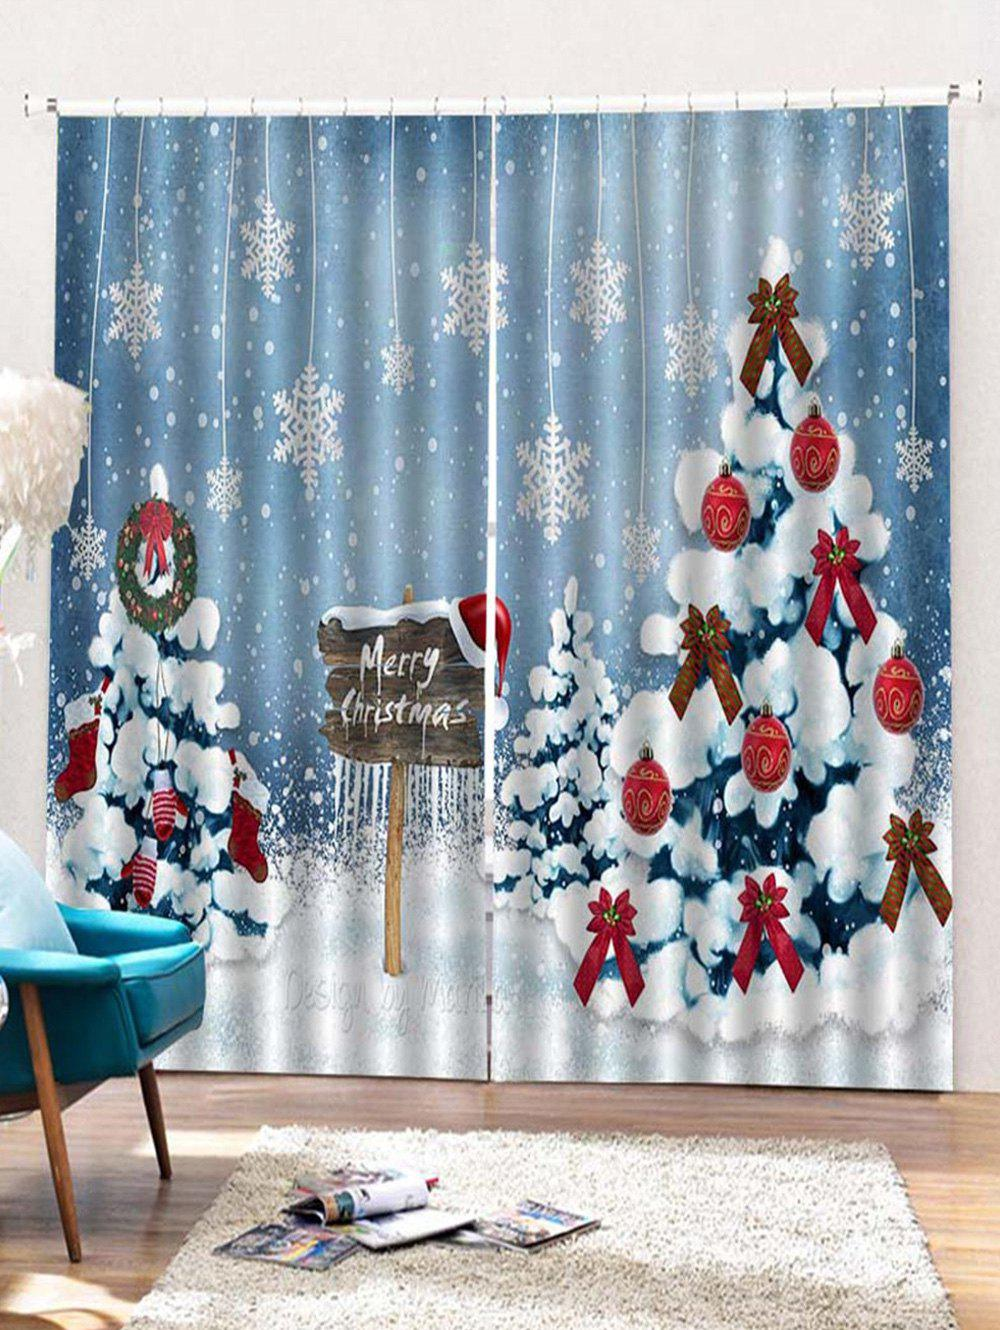 Online 2PCS Merry Christmas Snowflake Tree Pattern Window Curtains